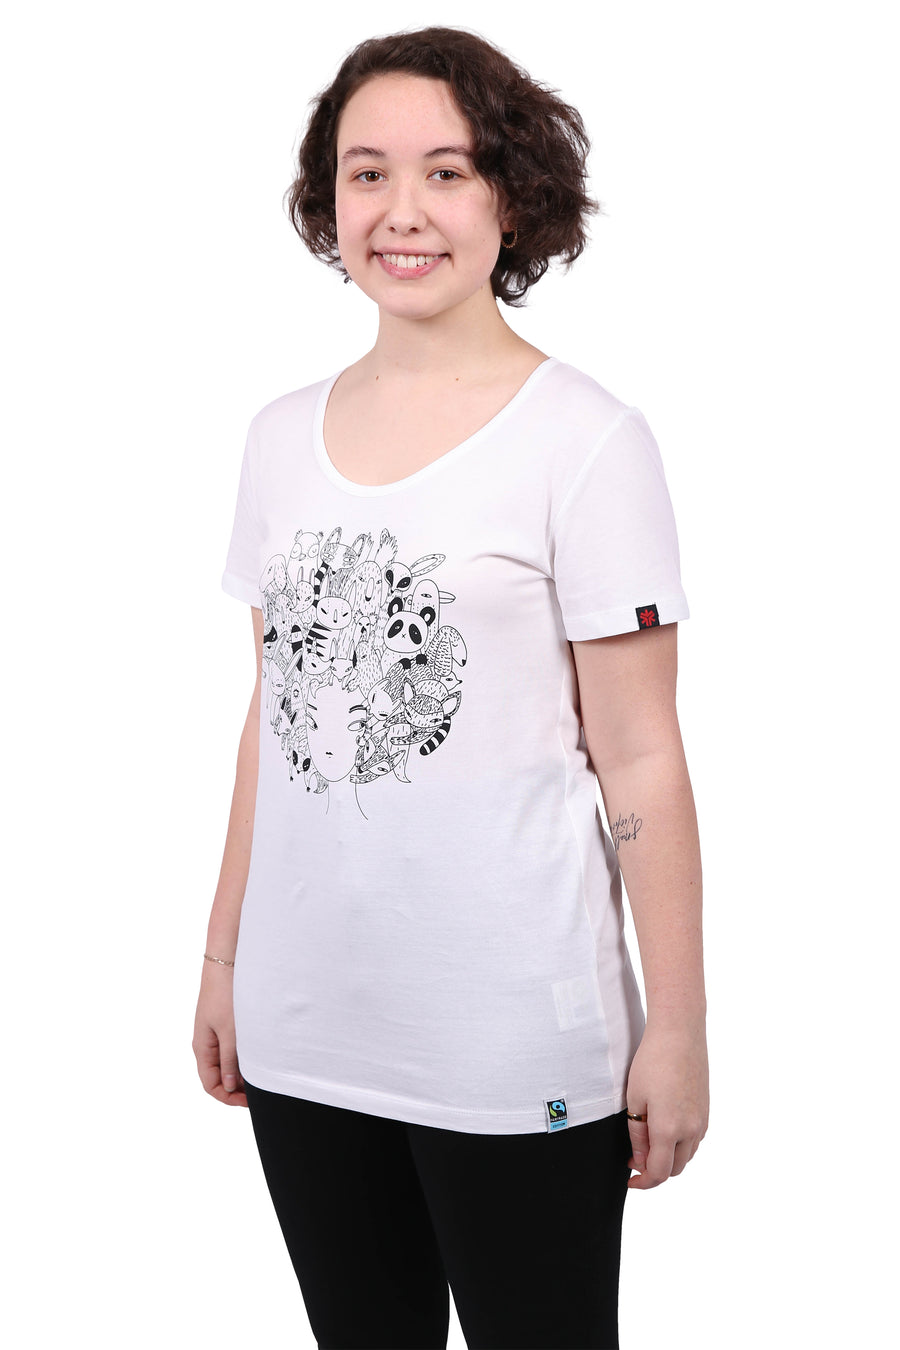 Zoo Hair white t-shirt - women's organic fairtrade Etiko